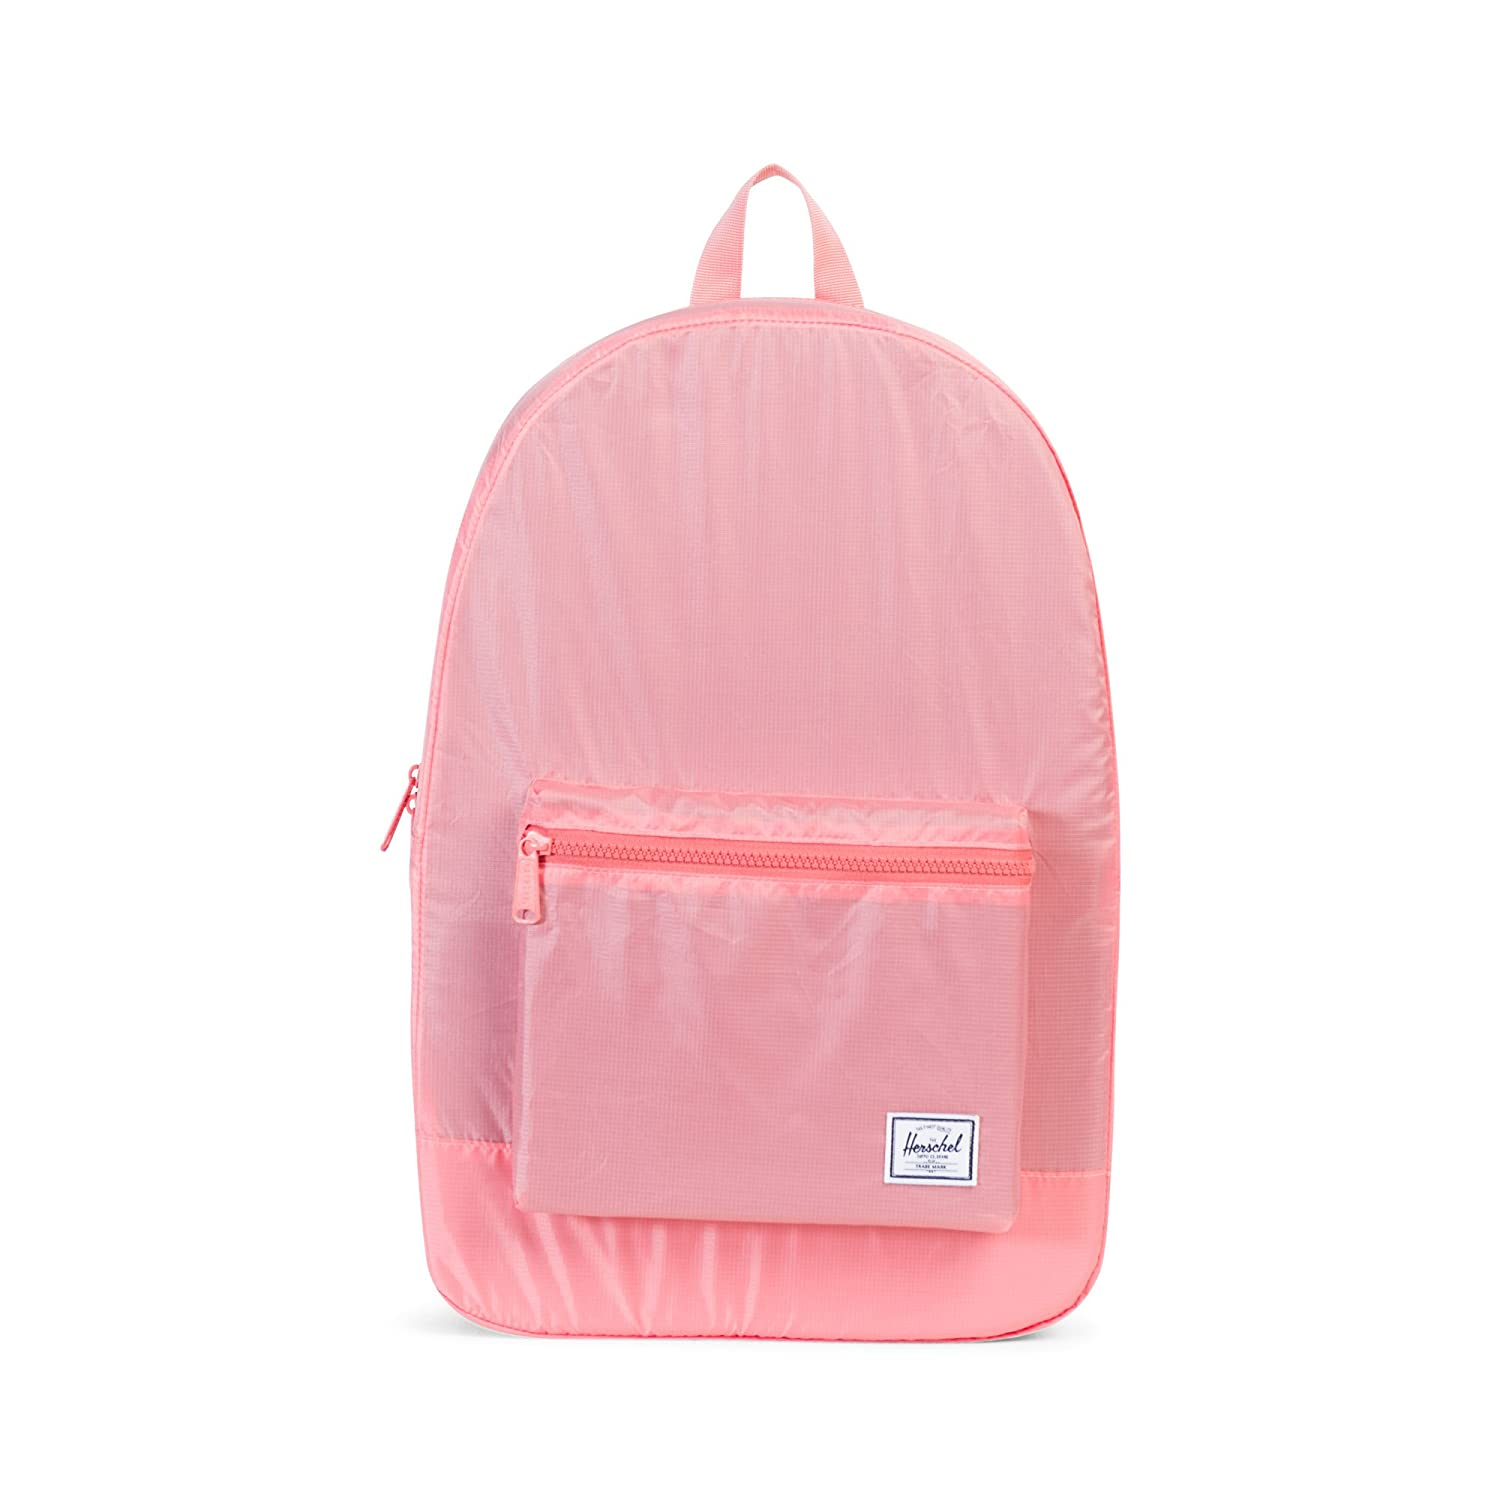 [ハーシェルサプライ] リュックサック Packable Daypack 10076-00003-OS B01MQKGZVM Strawberry Ice Strawberry Ice